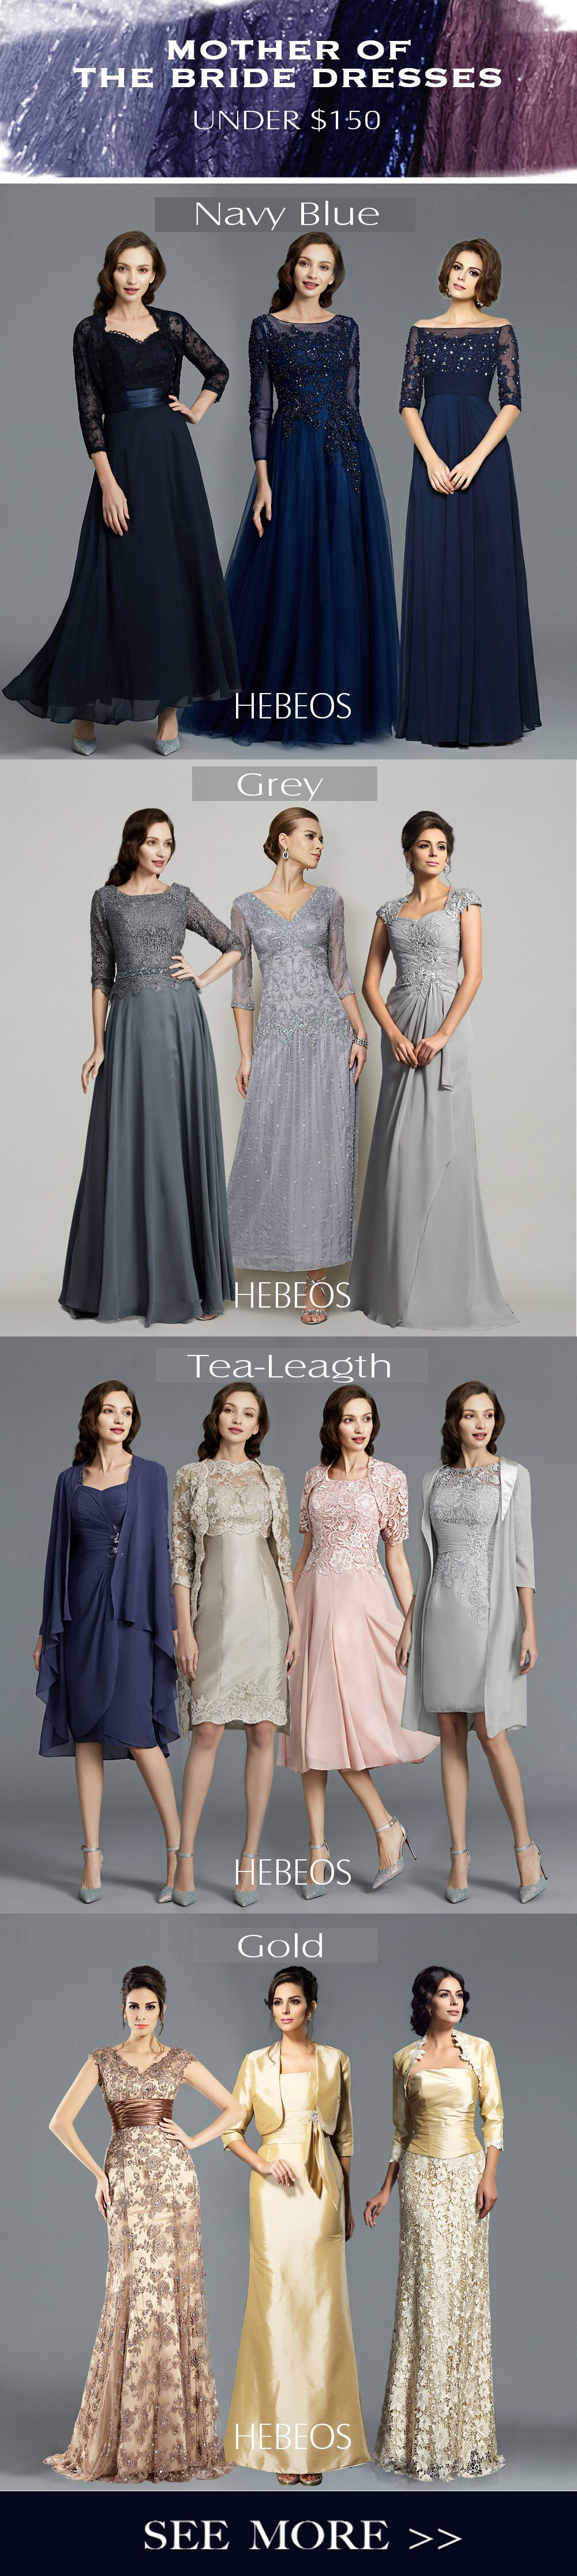 df8ac10118 Find gorgeous mother of the bride   mother of the groom dresses at HEBEOS  in various